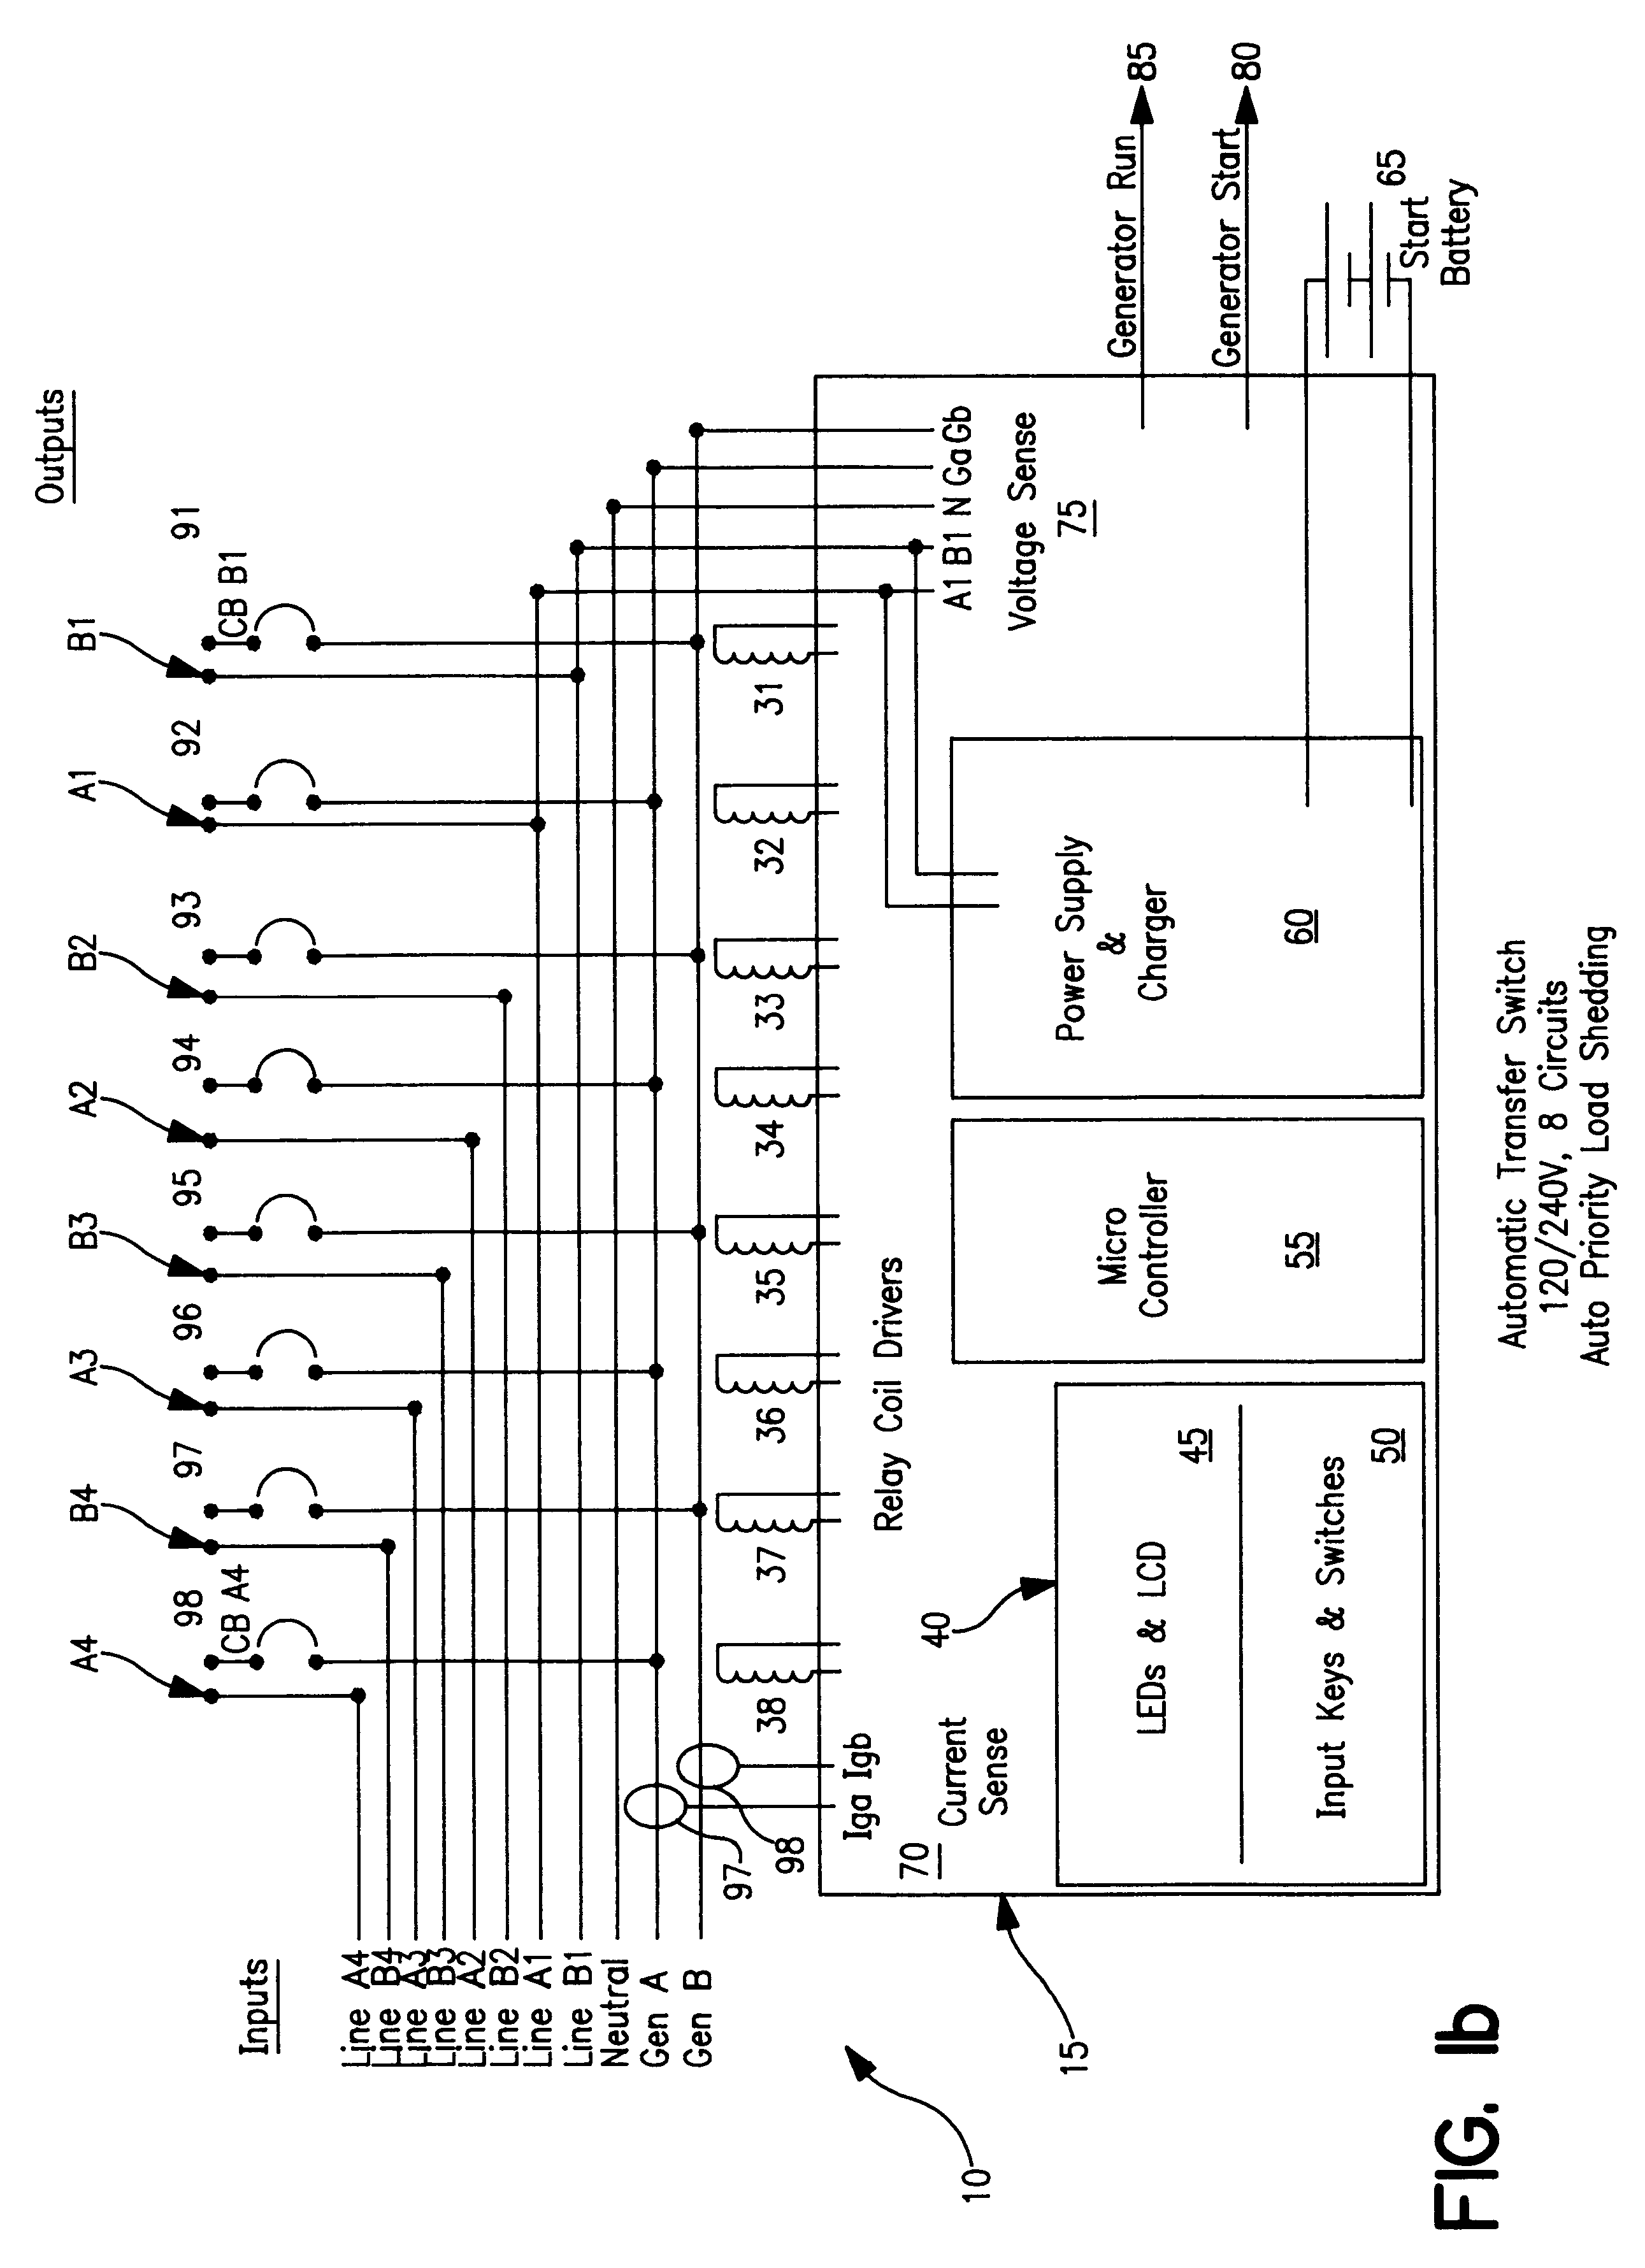 automatic transfer switch wiring diagram 2003 nissan sentra ignition patent us6172432 google patents